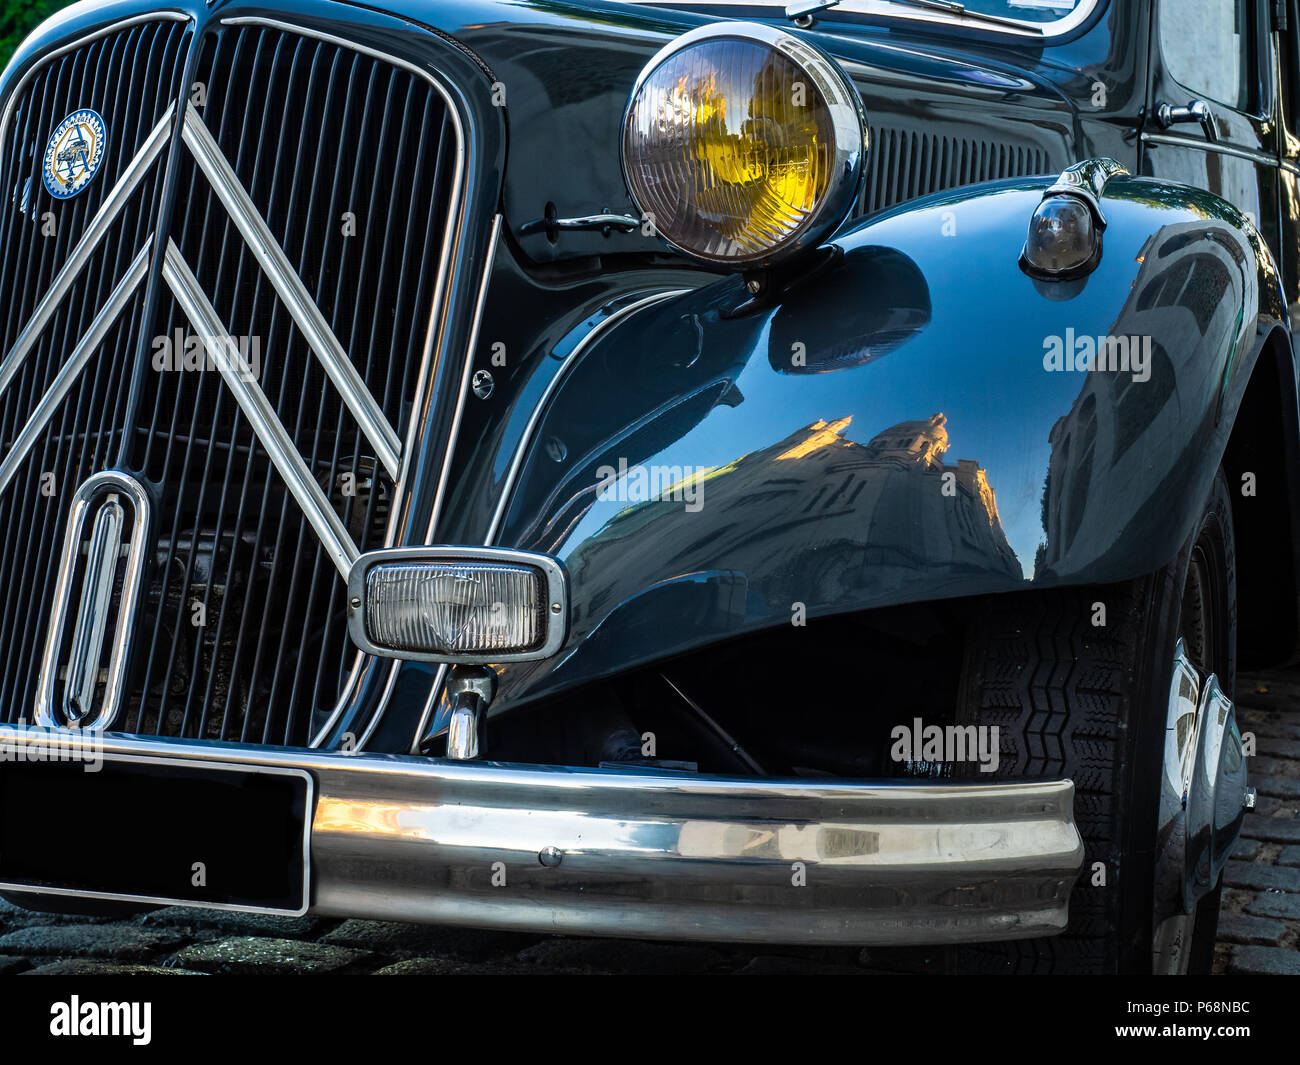 A Citroen Traction Avant sitting on a cobbled street near to Sacre Couer in the Montmatre district of Paris Stock Photo